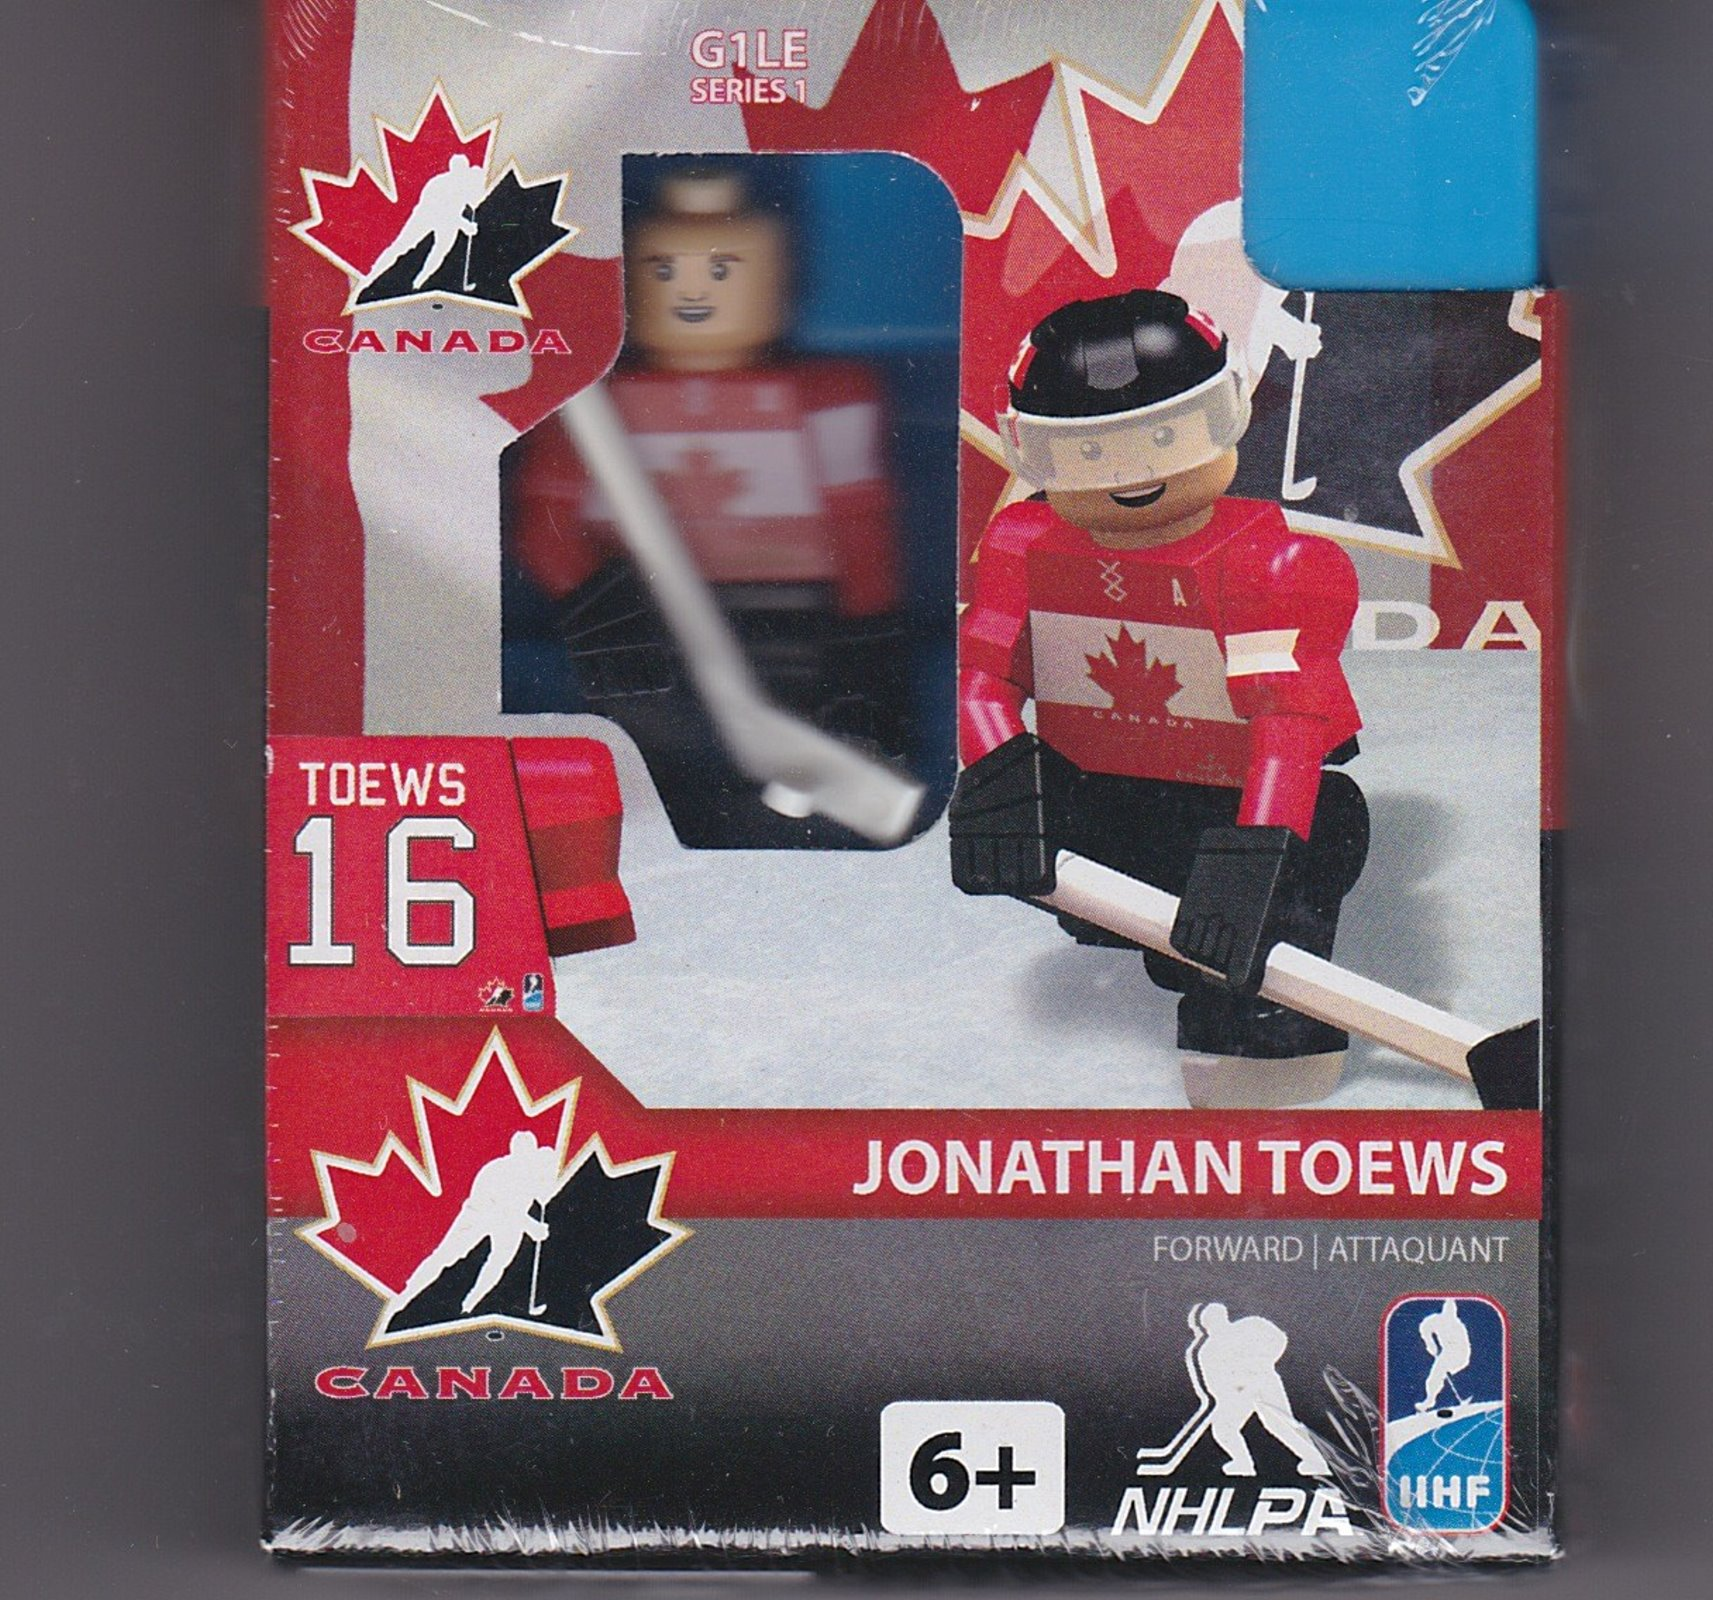 Jonathan Toews Team Canada NHL OYO Hockey G1LE Series 1